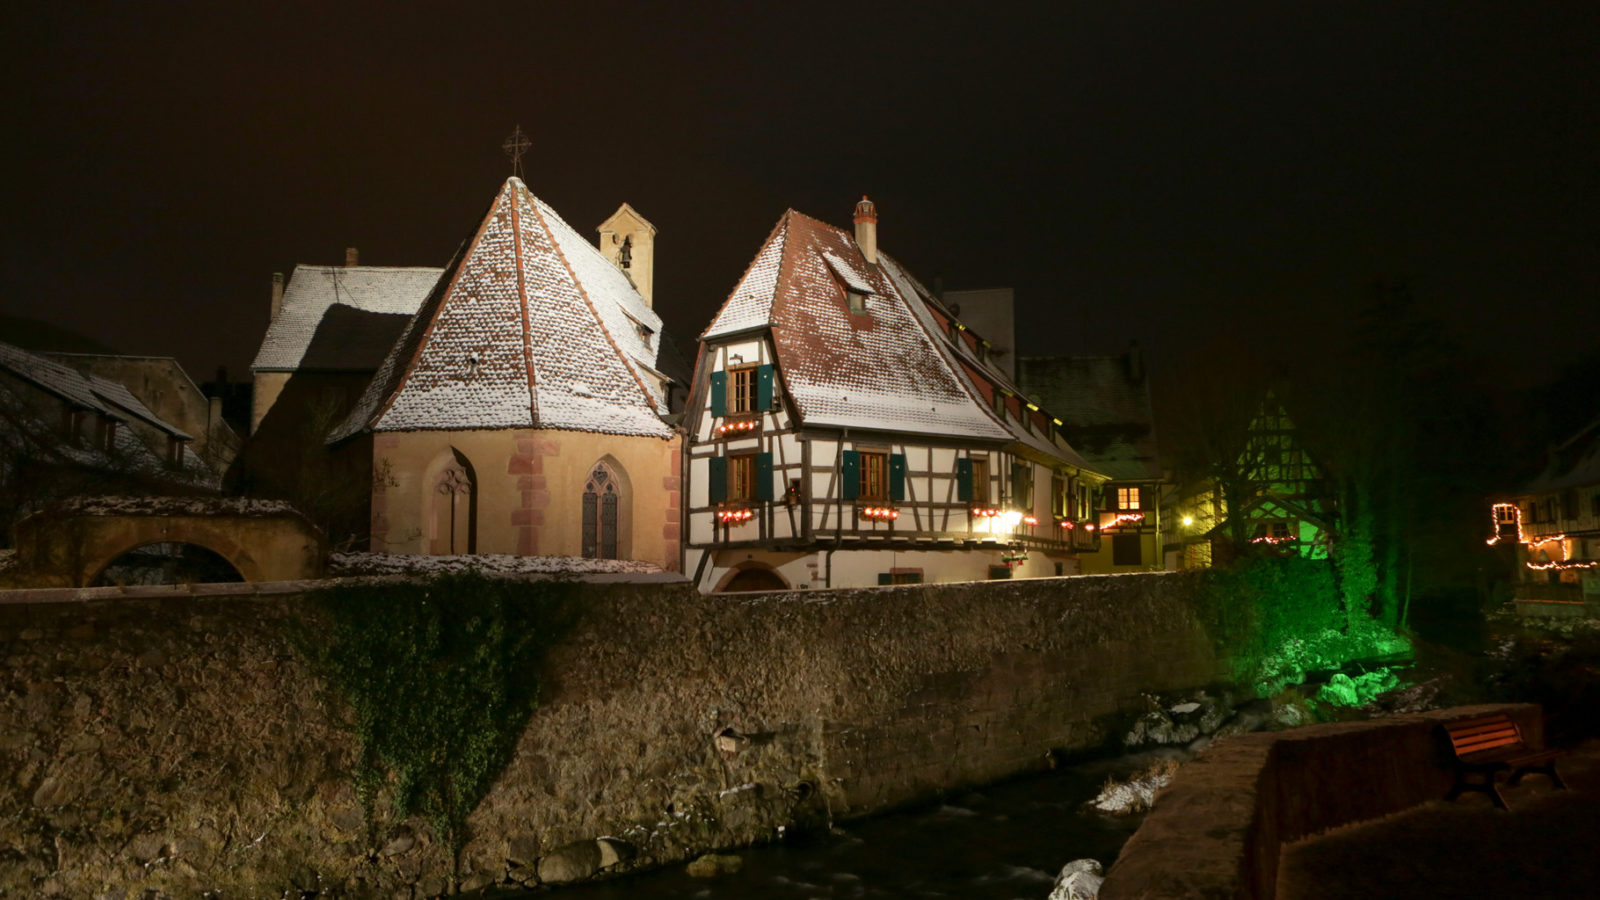 Noël à Kaysersberg photo 5